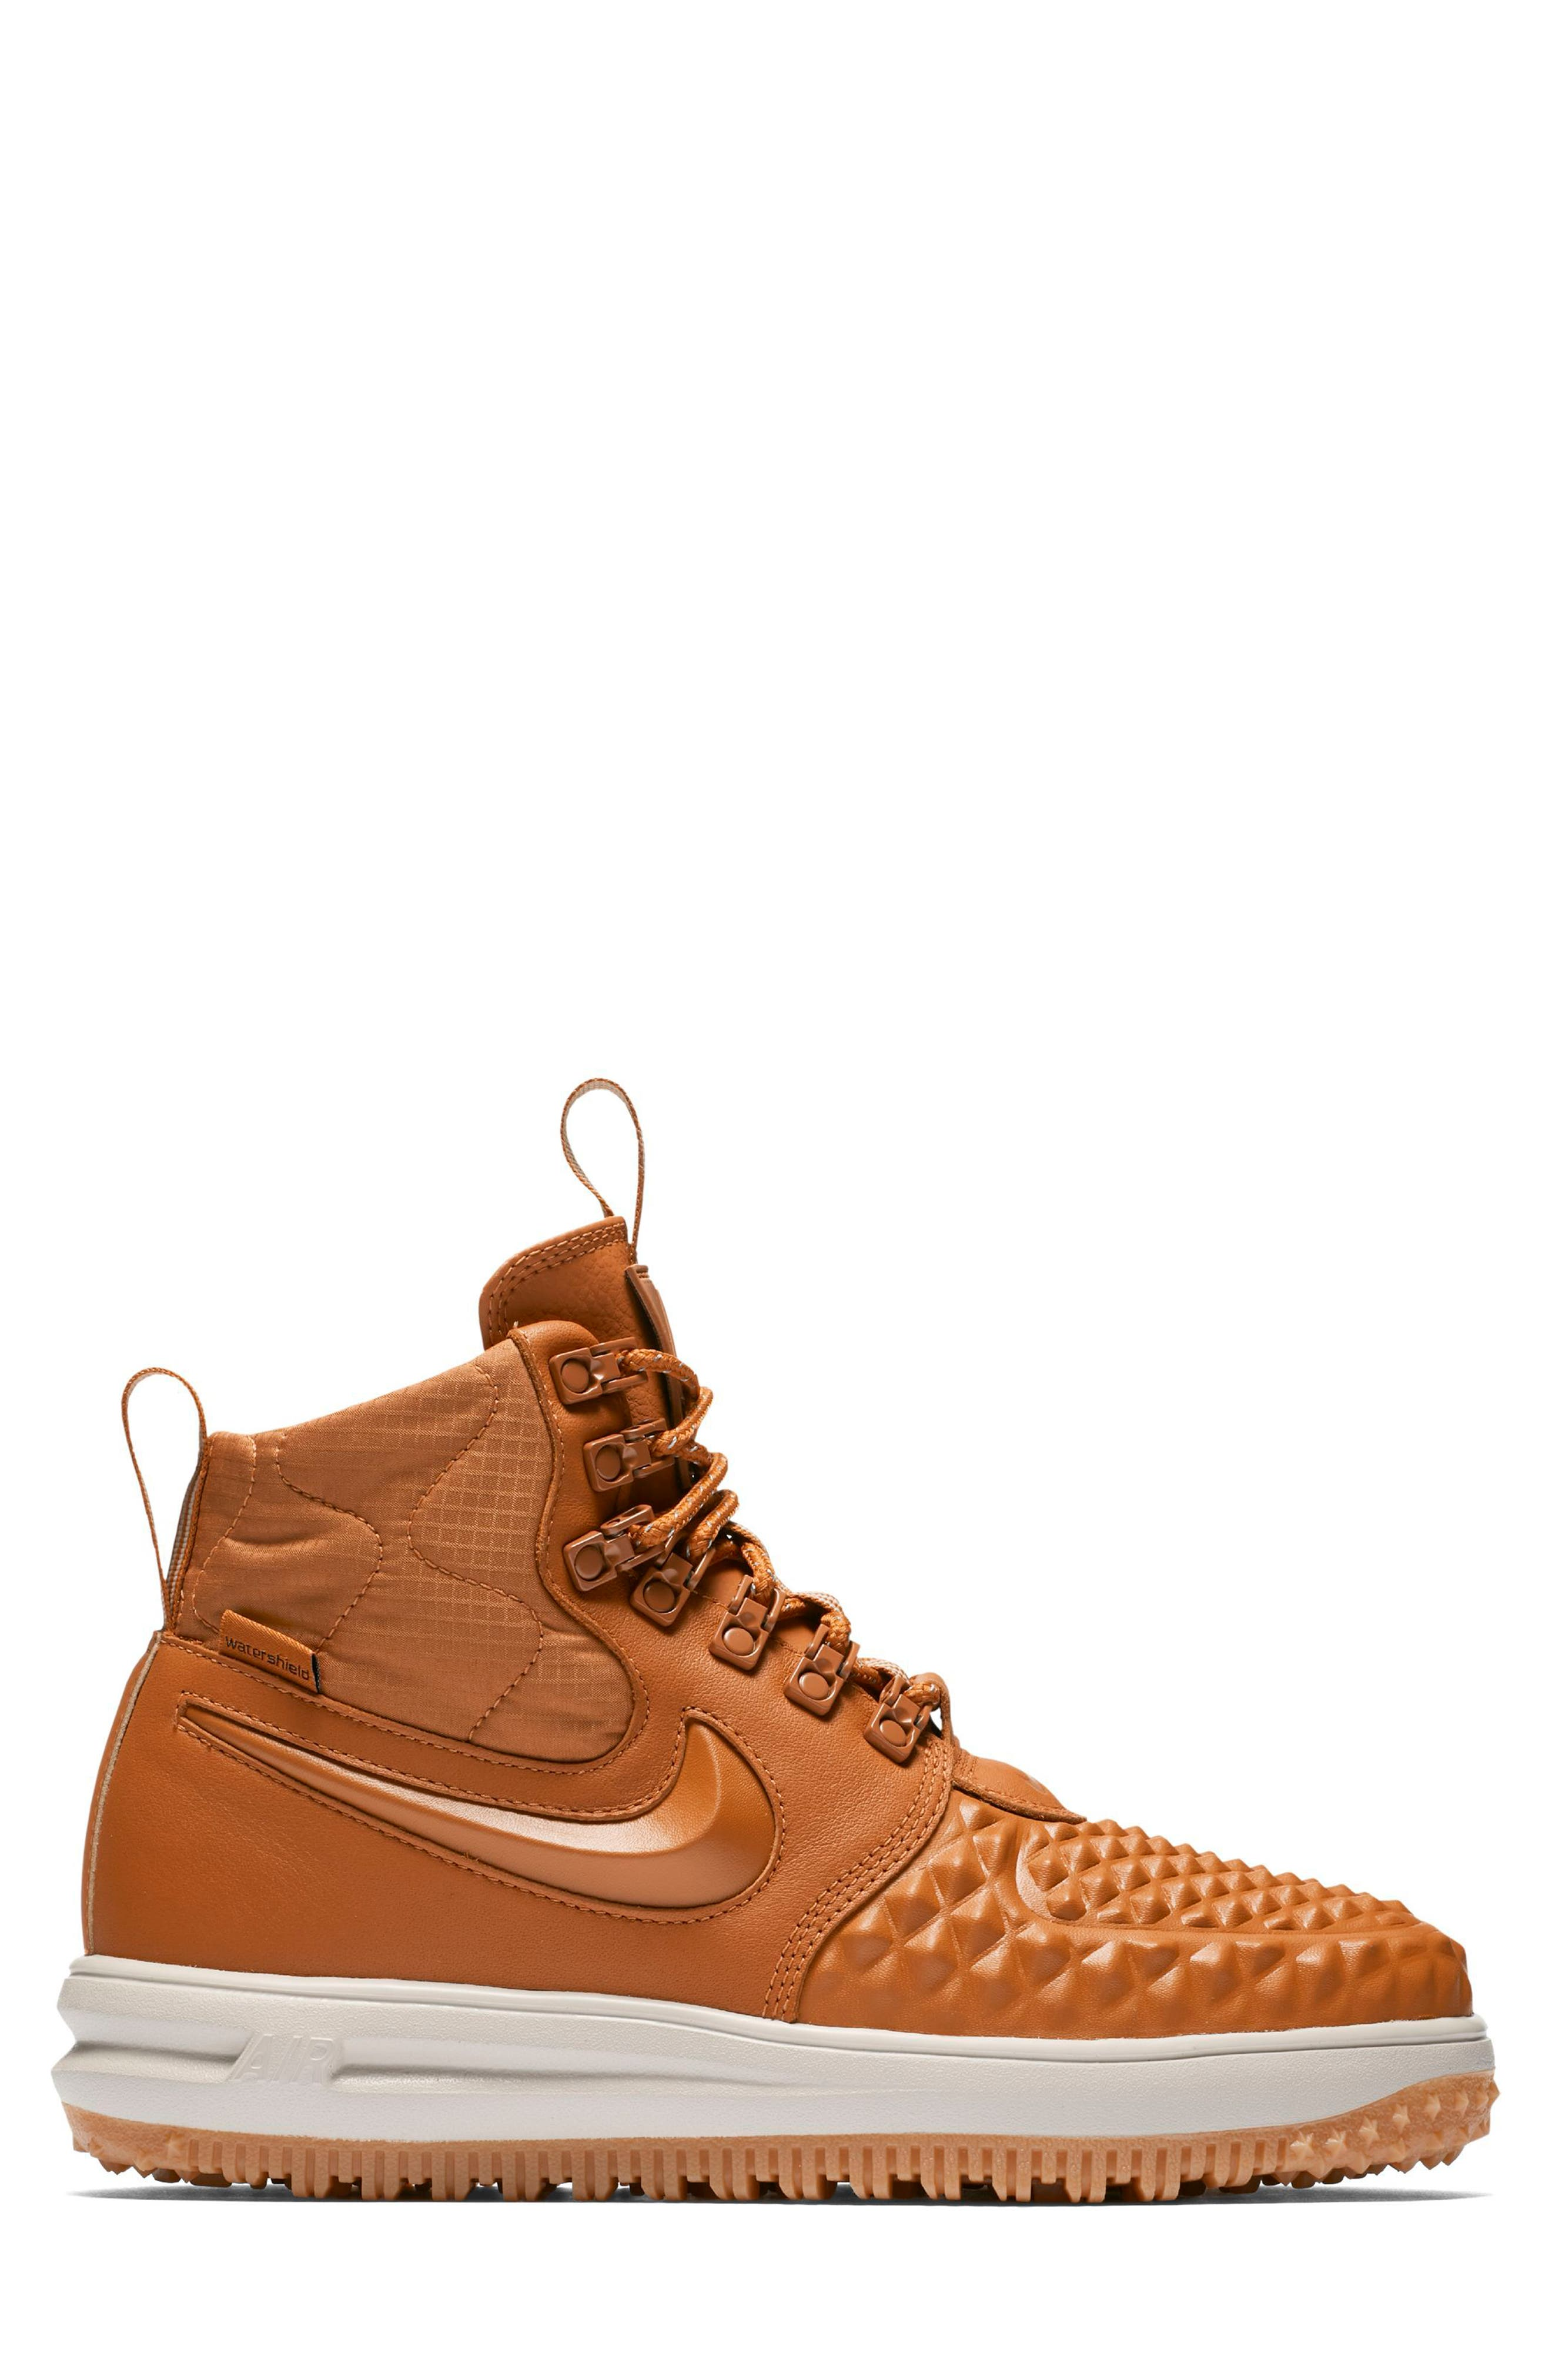 Lunar Force 1 Waterproof Duckboot,                             Alternate thumbnail 8, color,